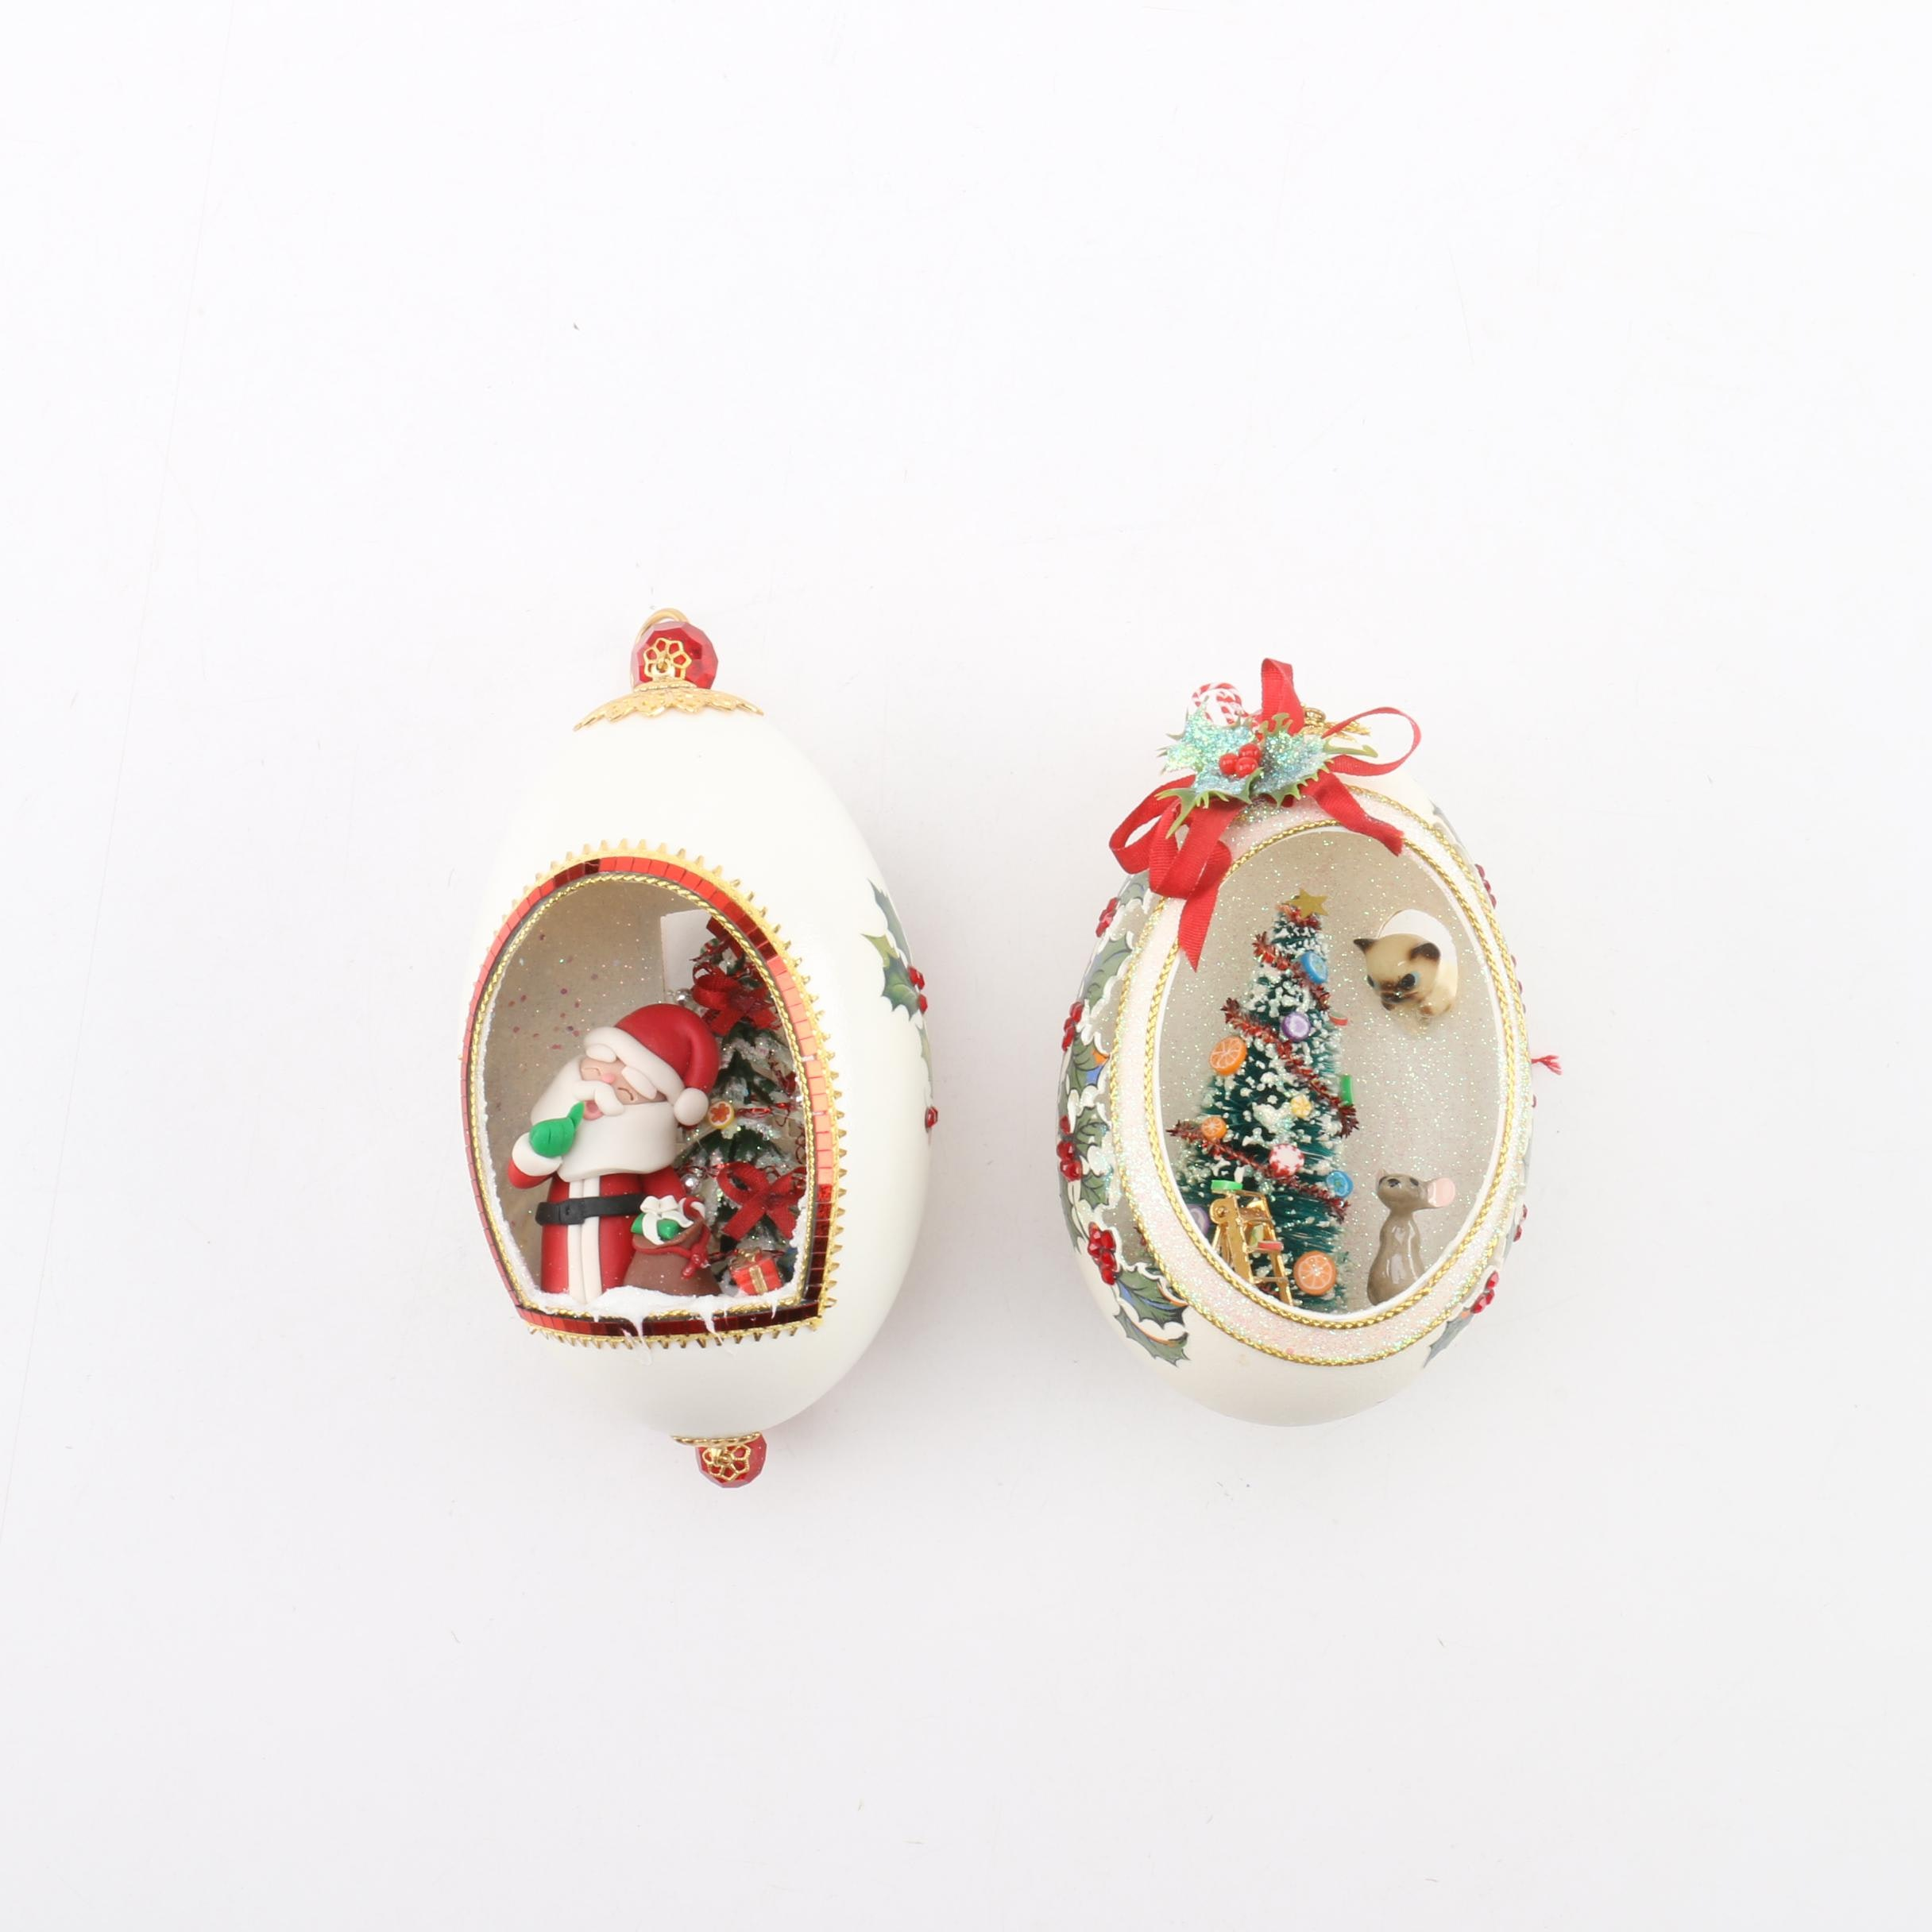 Signed Hand-Decorated Goose Egg Ornaments